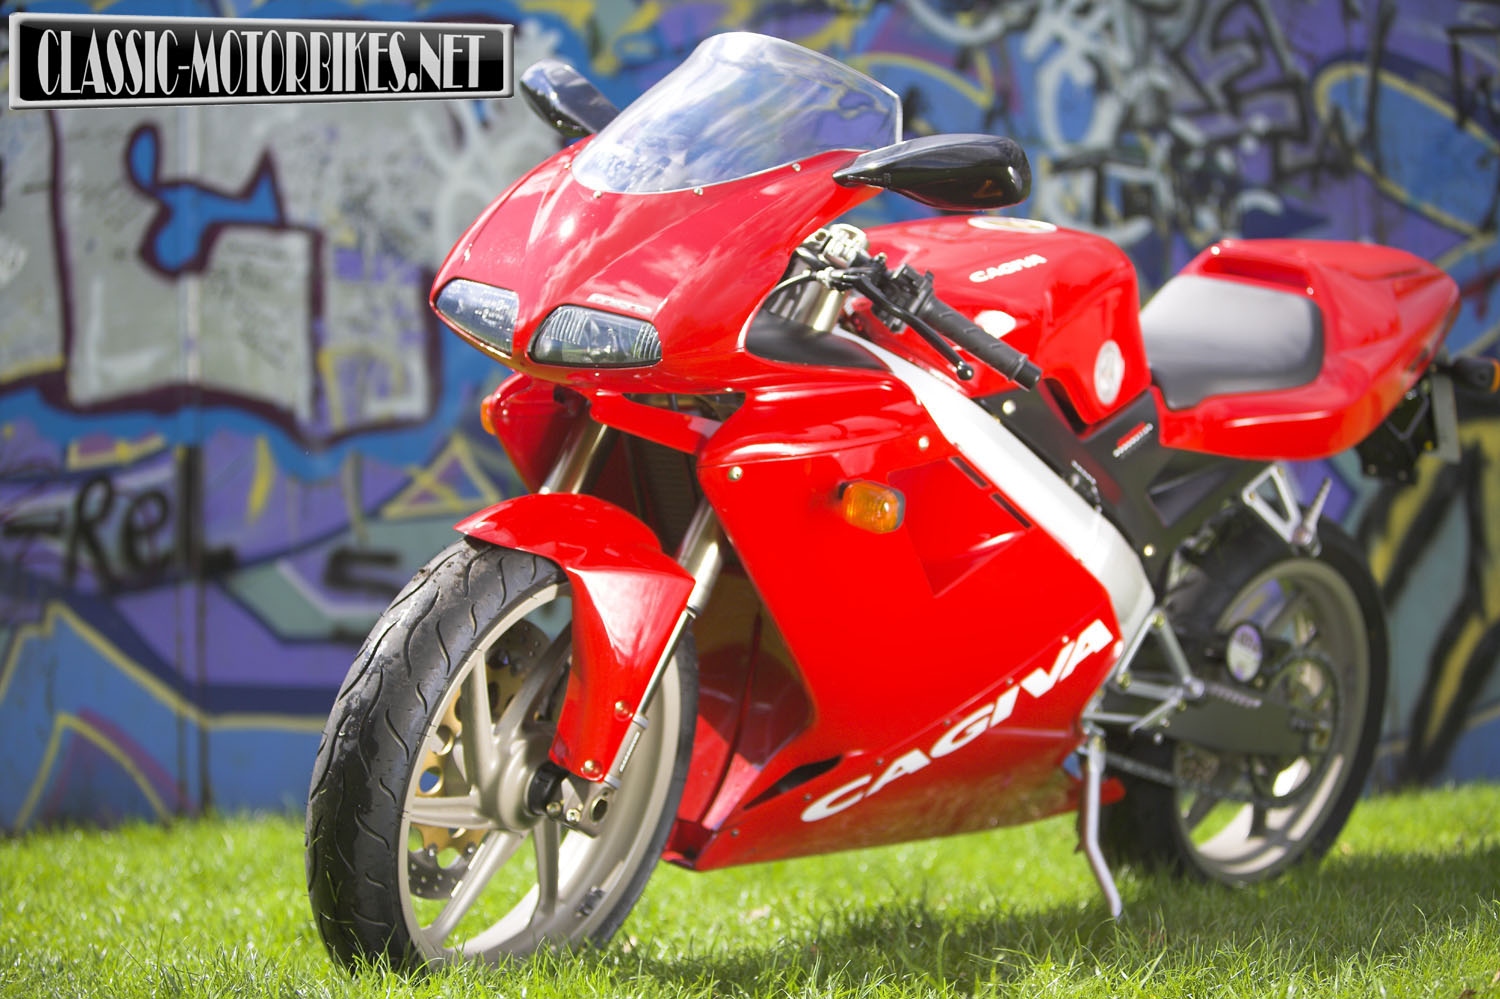 cagiva mito 125 road test classic motorbikes. Black Bedroom Furniture Sets. Home Design Ideas